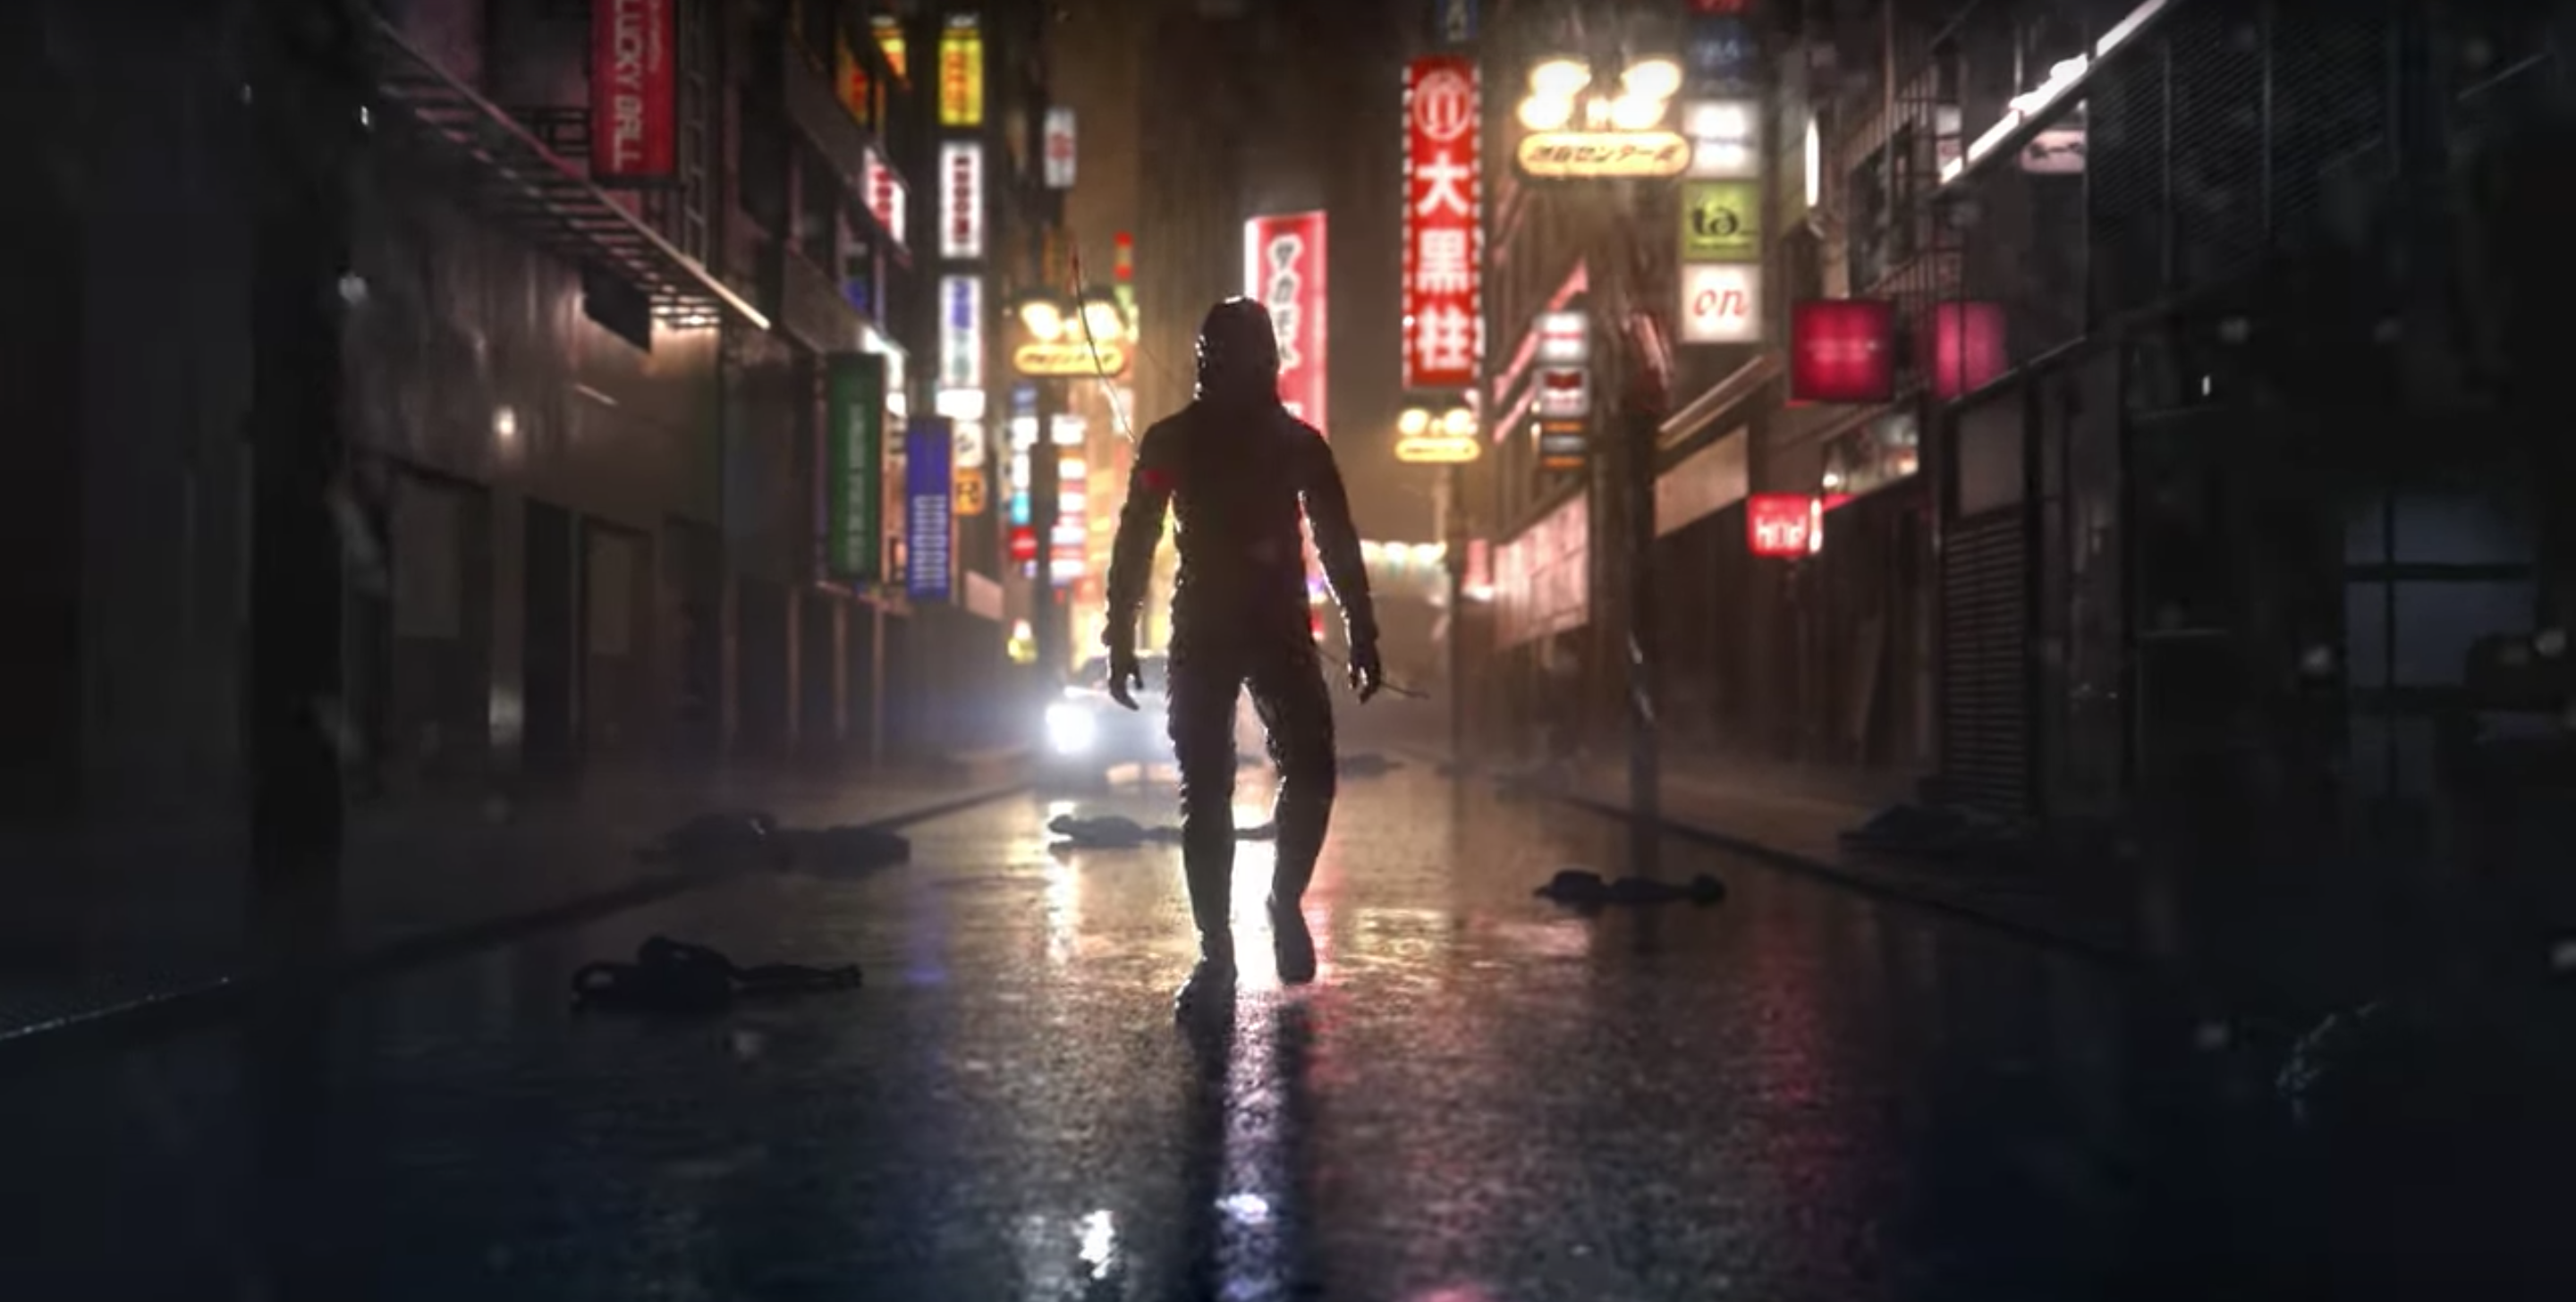 GhostWire: Tokyo is an action game from The Evil Within devs